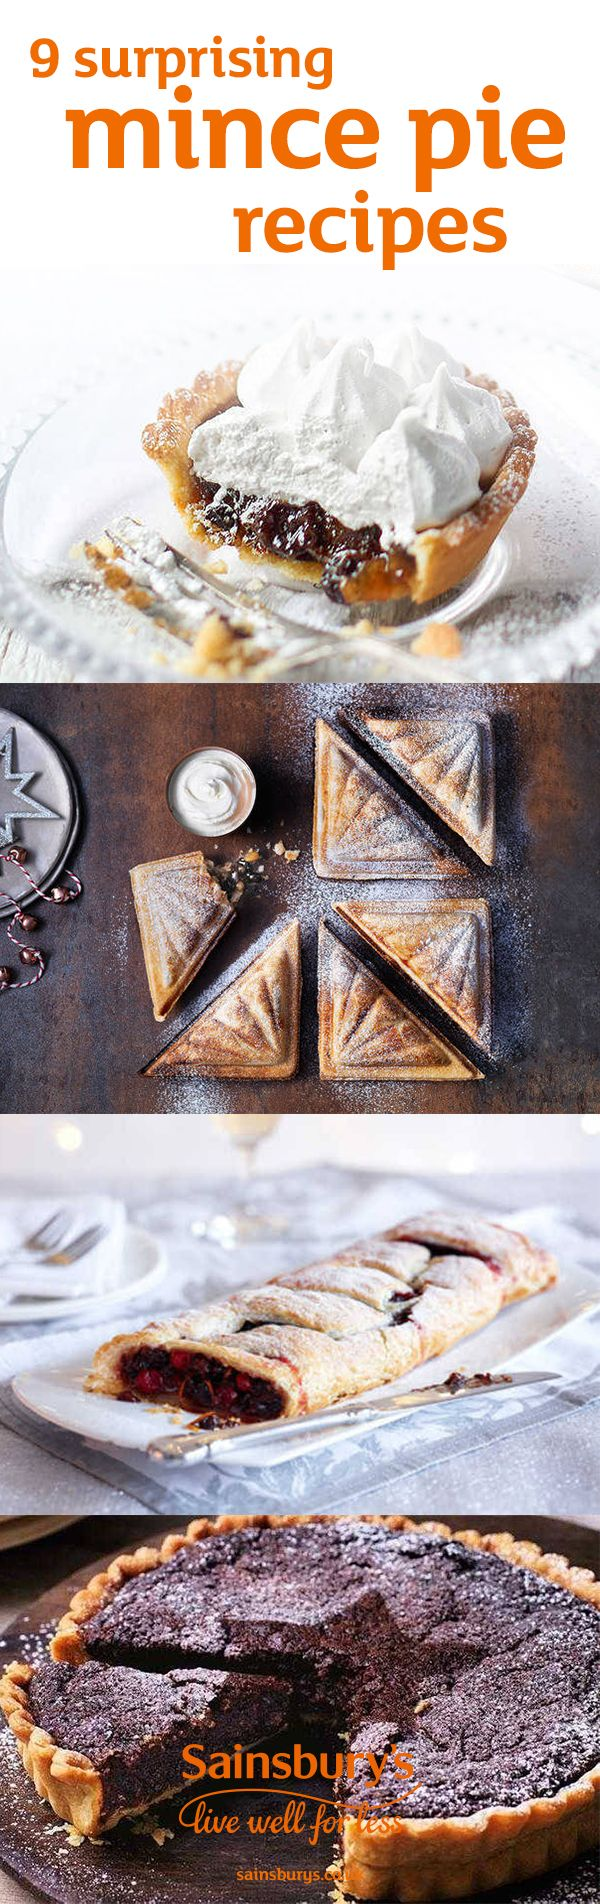 Christmas wouldn't be complete without a mince pie and we've got 9 recipes to make them even better. Give your classic mince pies a tasty twist with these great recipes. We've got marshmallow mince pies, gluten-free mince pies, mince pie baked cheesecake and mince pie toasties. If you're looking for something a bit different this Christmas, head to the Sainsbury's recipe website